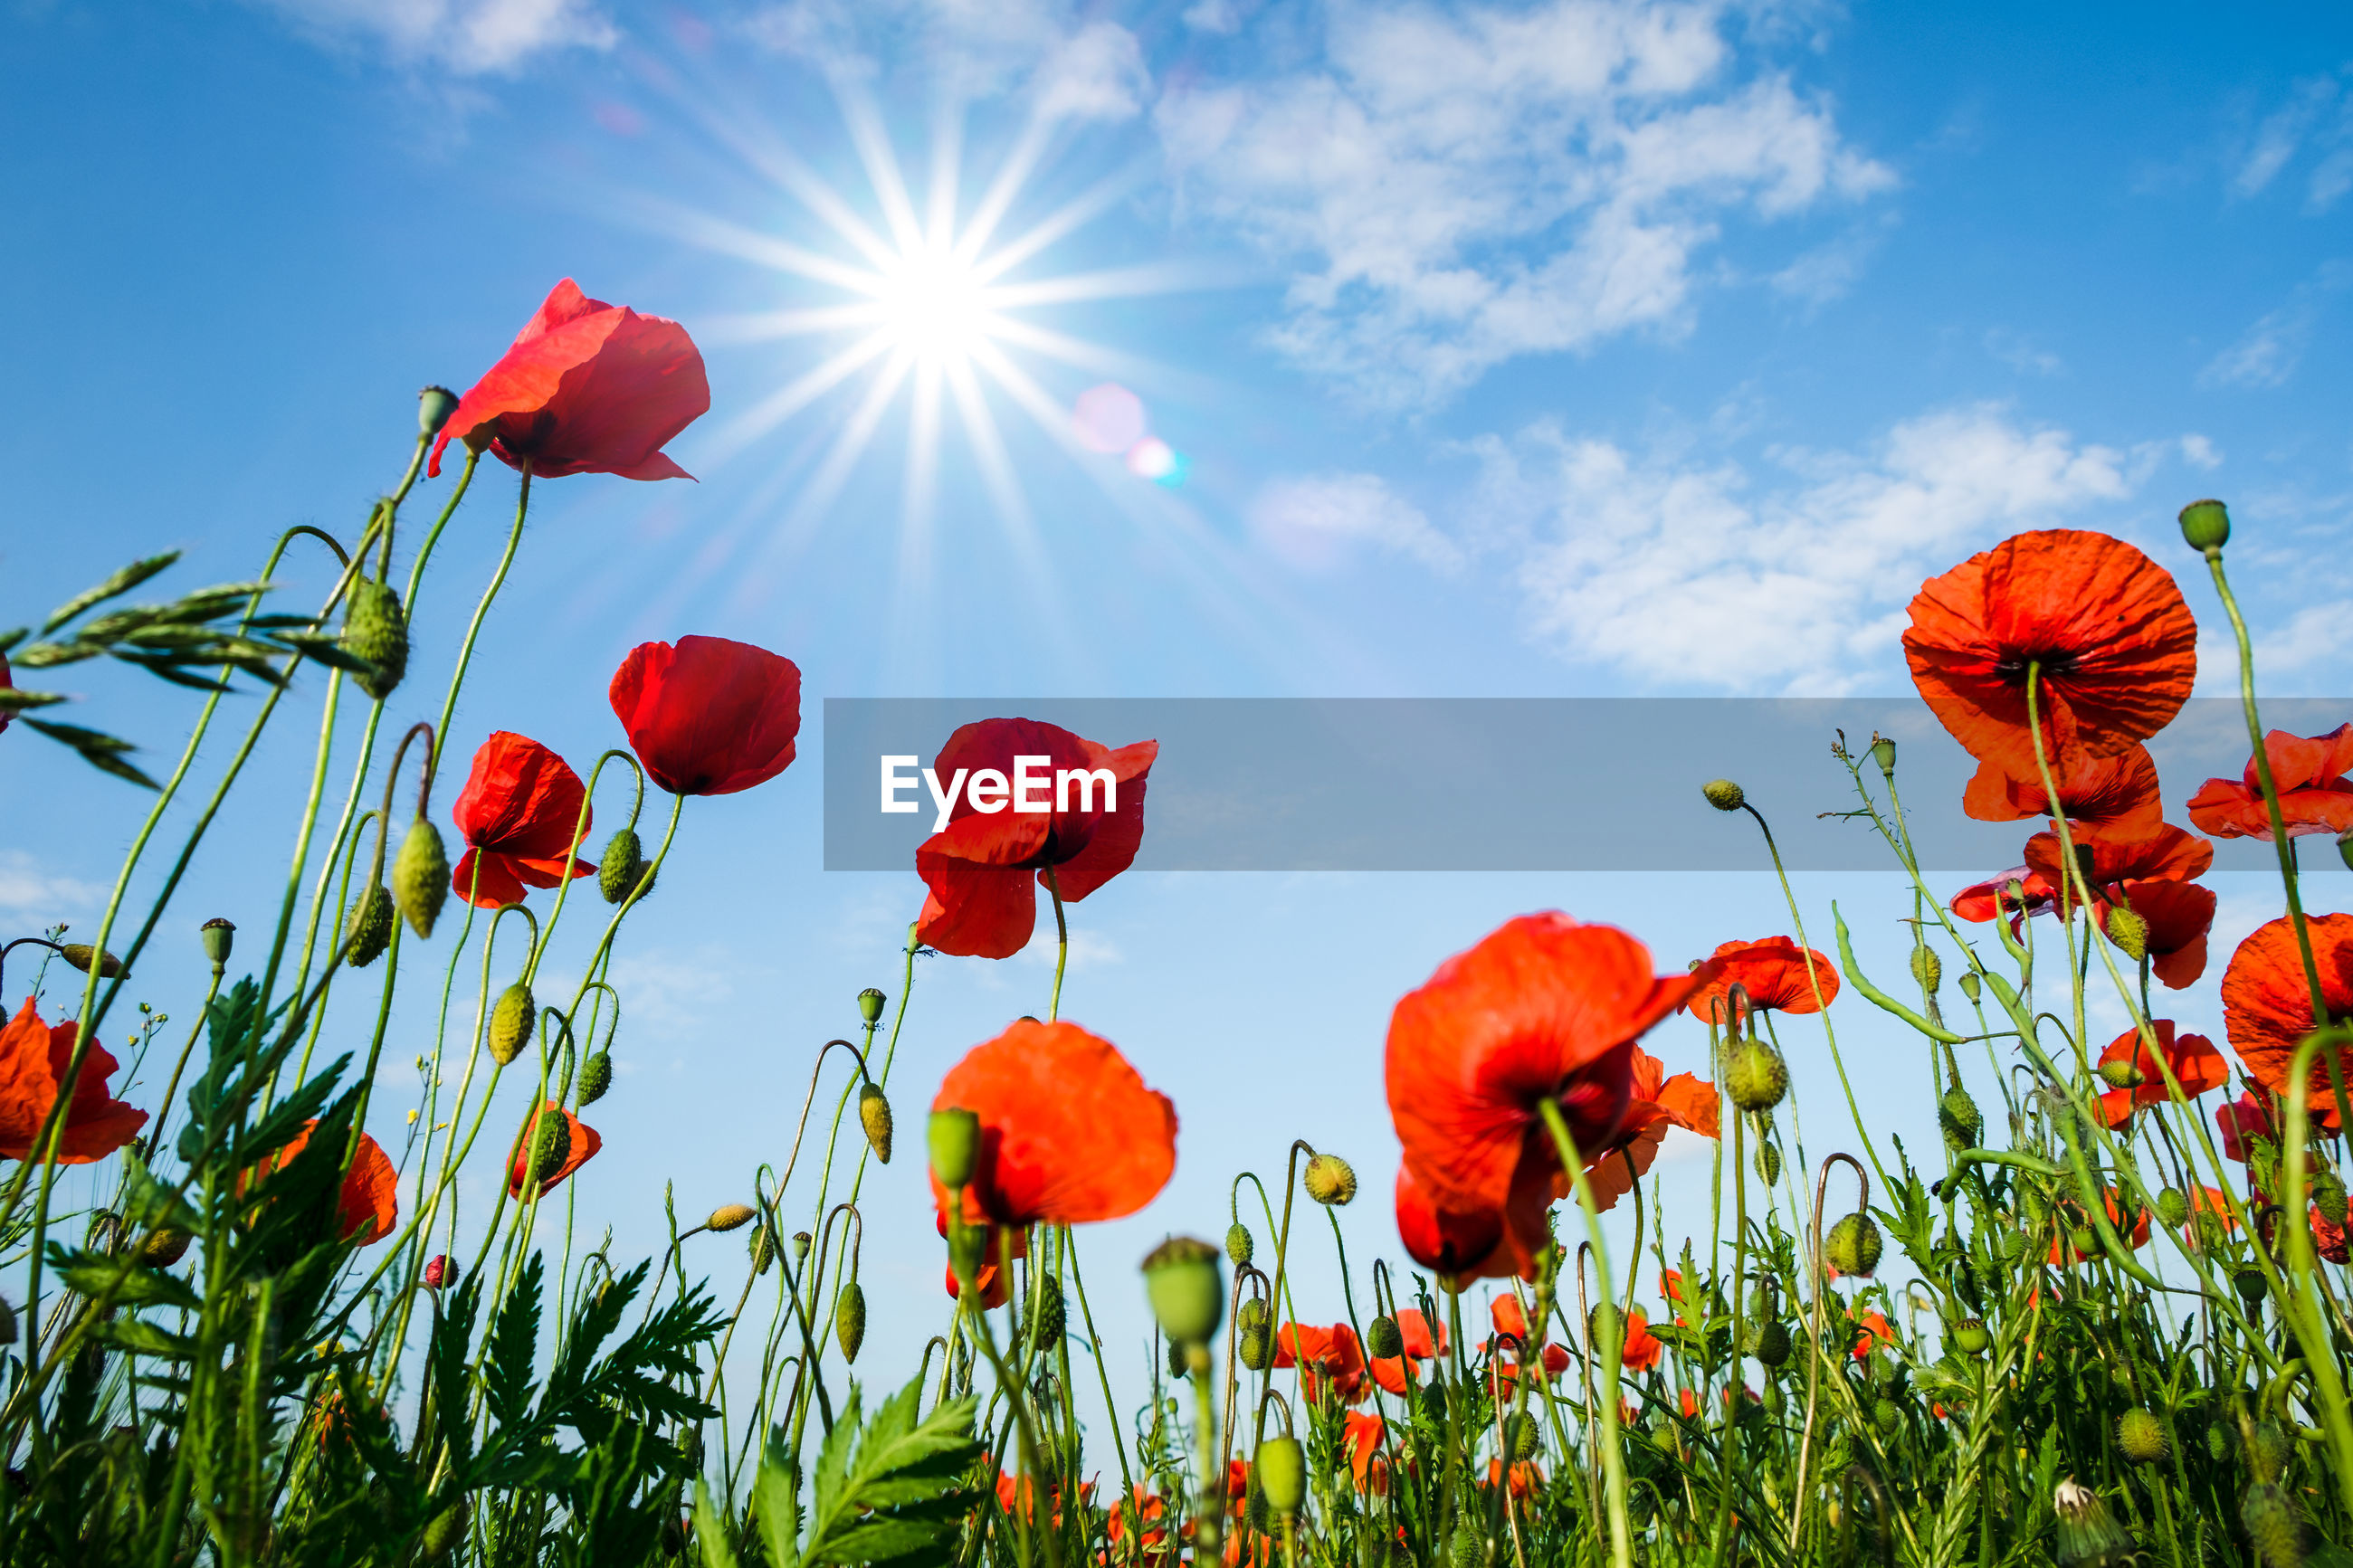 LOW ANGLE VIEW OF POPPY FLOWERS BLOOMING ON FIELD